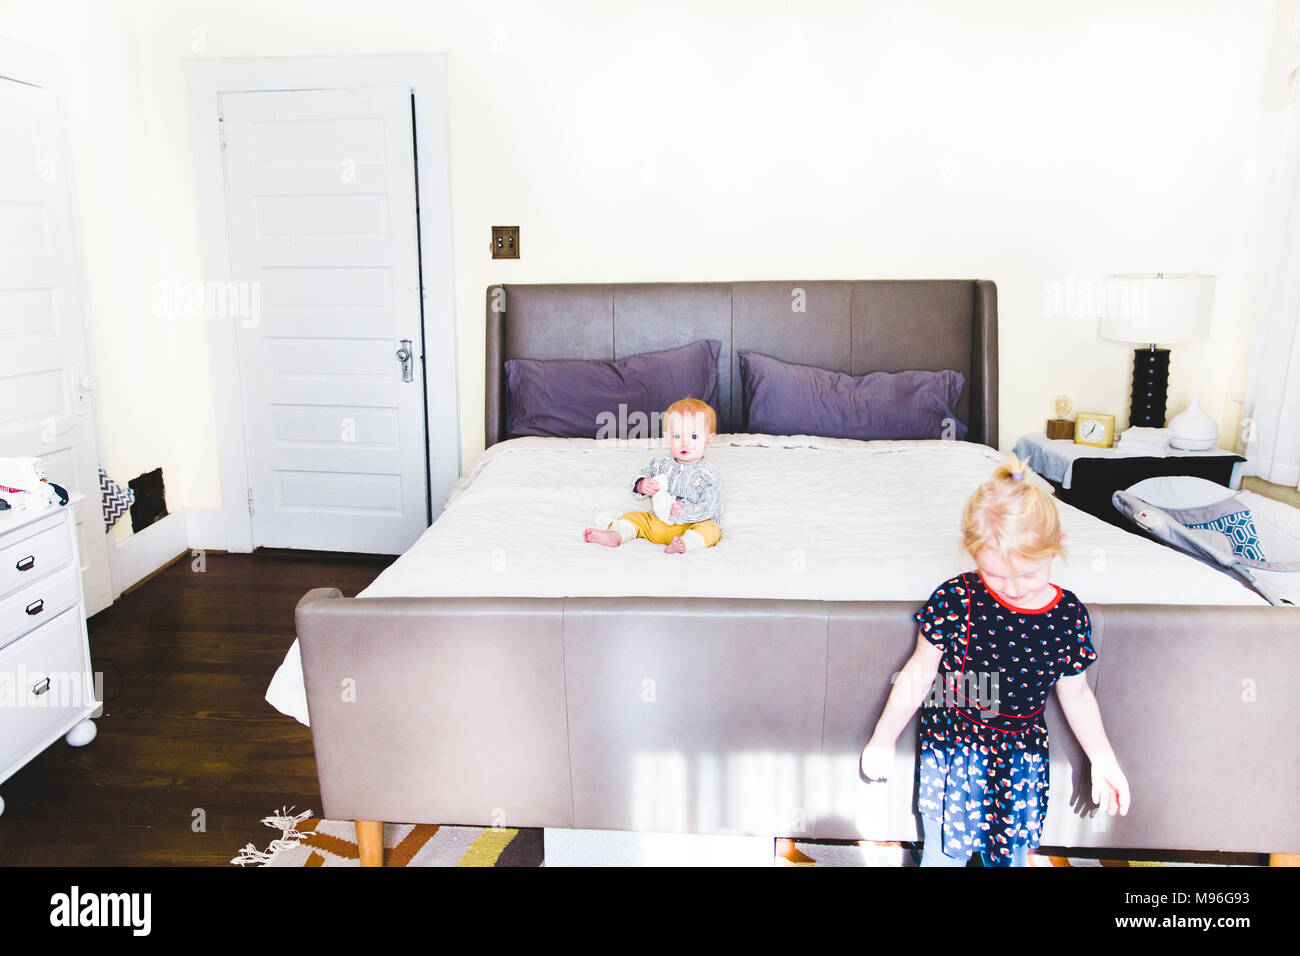 Baby sitting on bed with girl in foreground - Stock Image